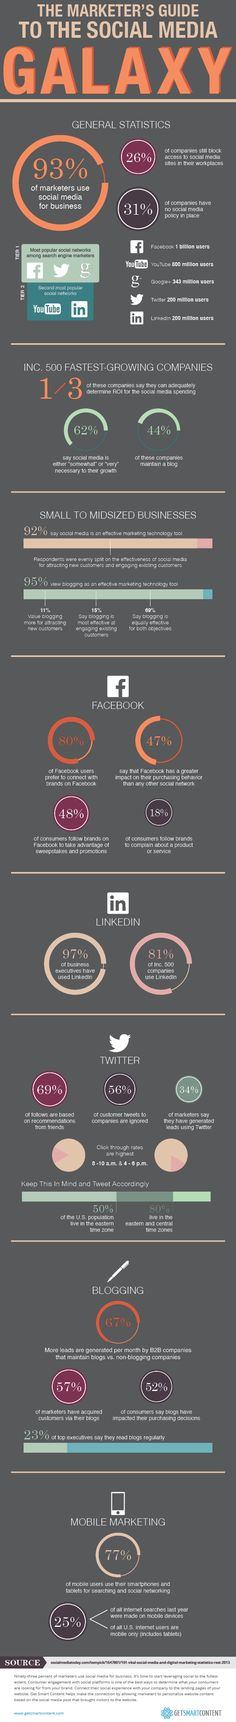 Marketers, Find Your Way Through Social Media [infographic]   WeRSM   We Are Social Media